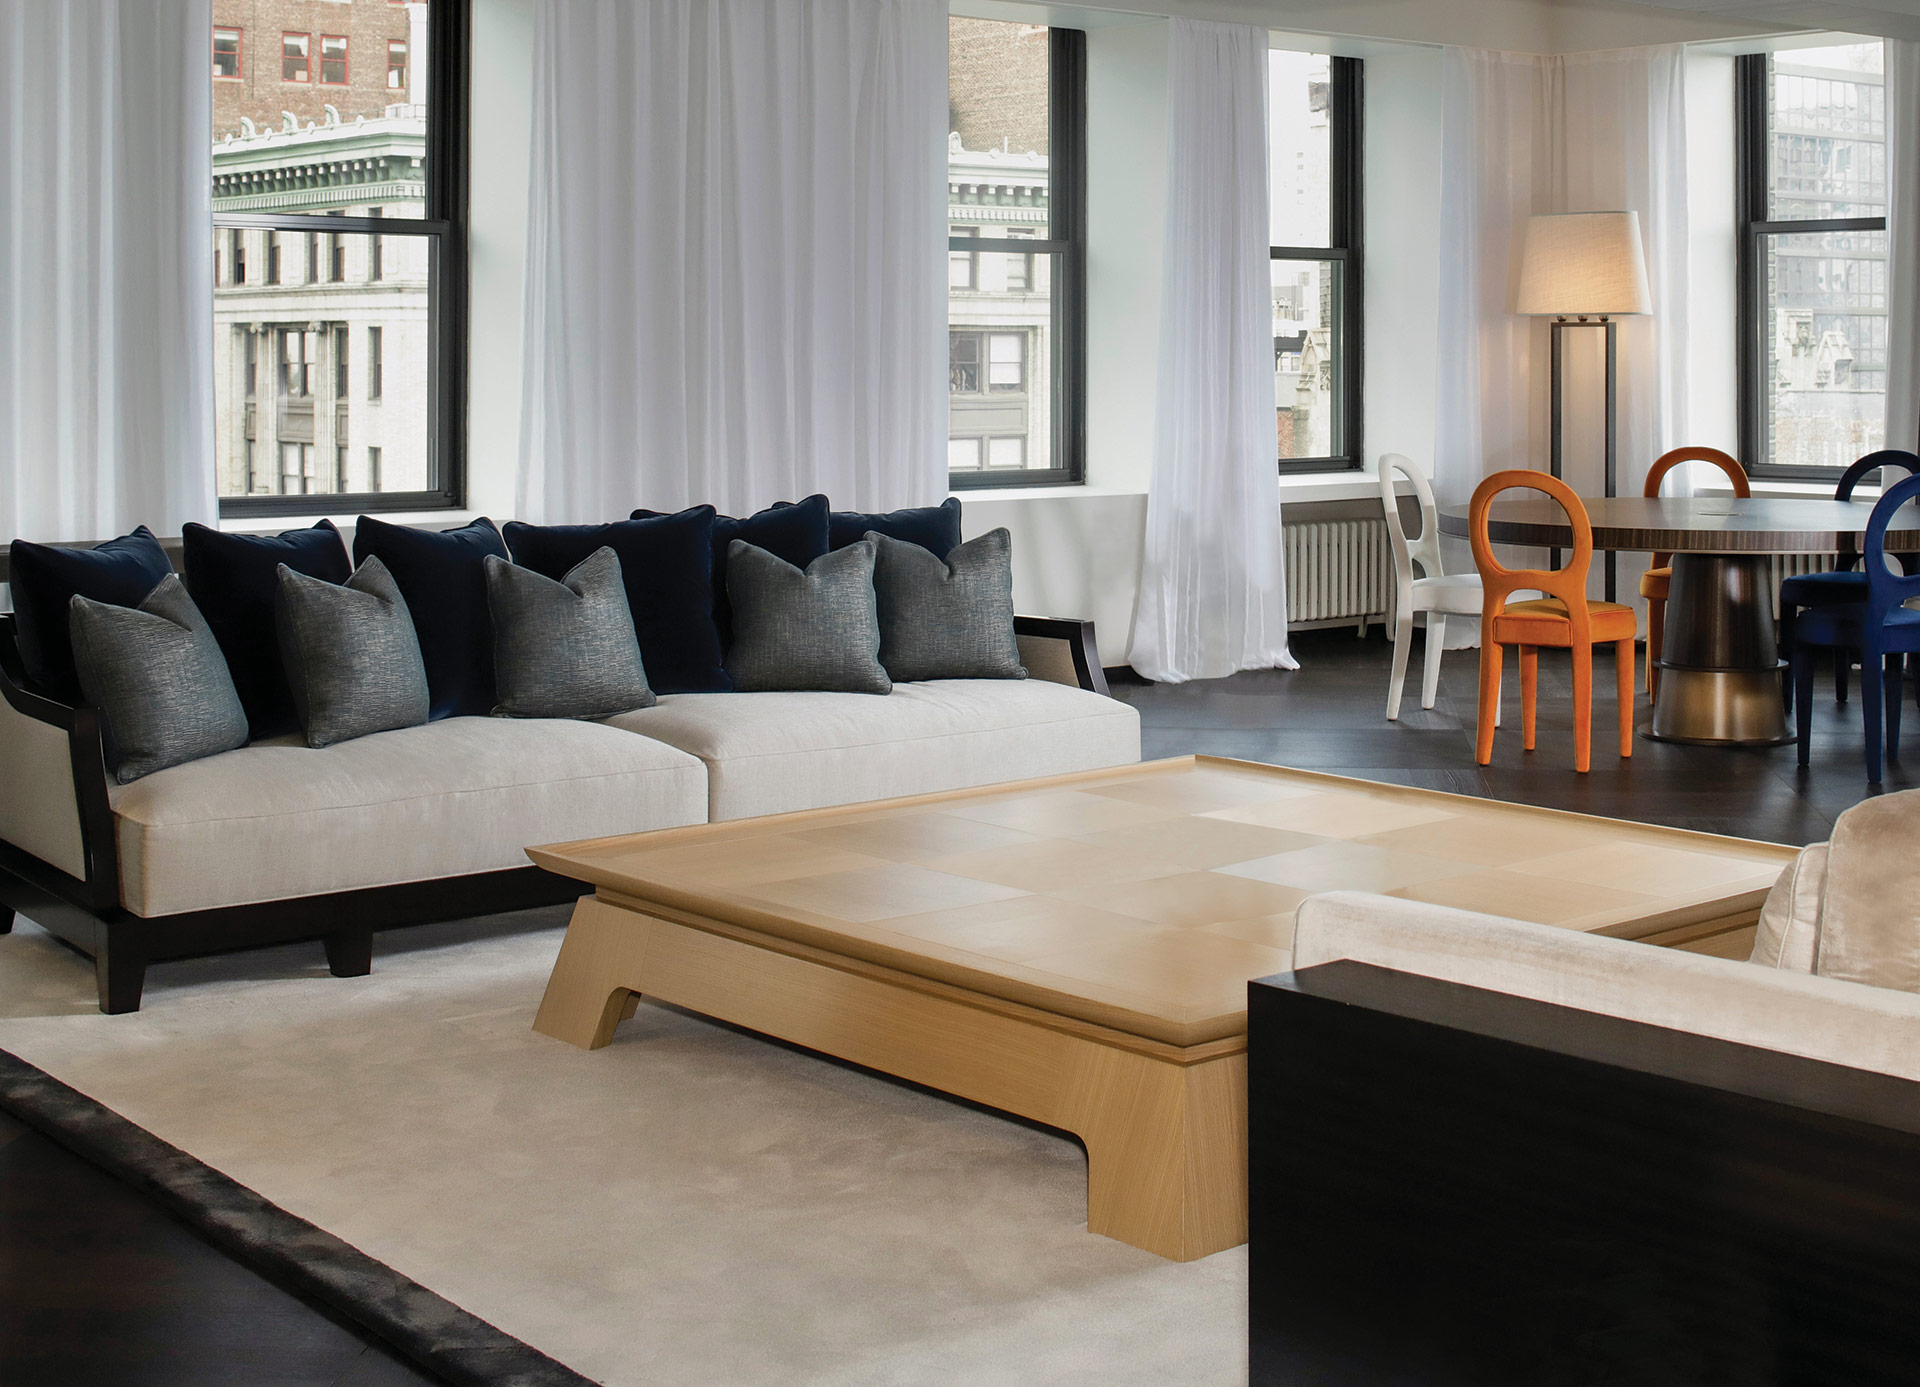 In 2019 the New York showroom moved to Madison Avenue at 32nd Street, located on the 17th floor right above design row and steps away from the Empire State Building.